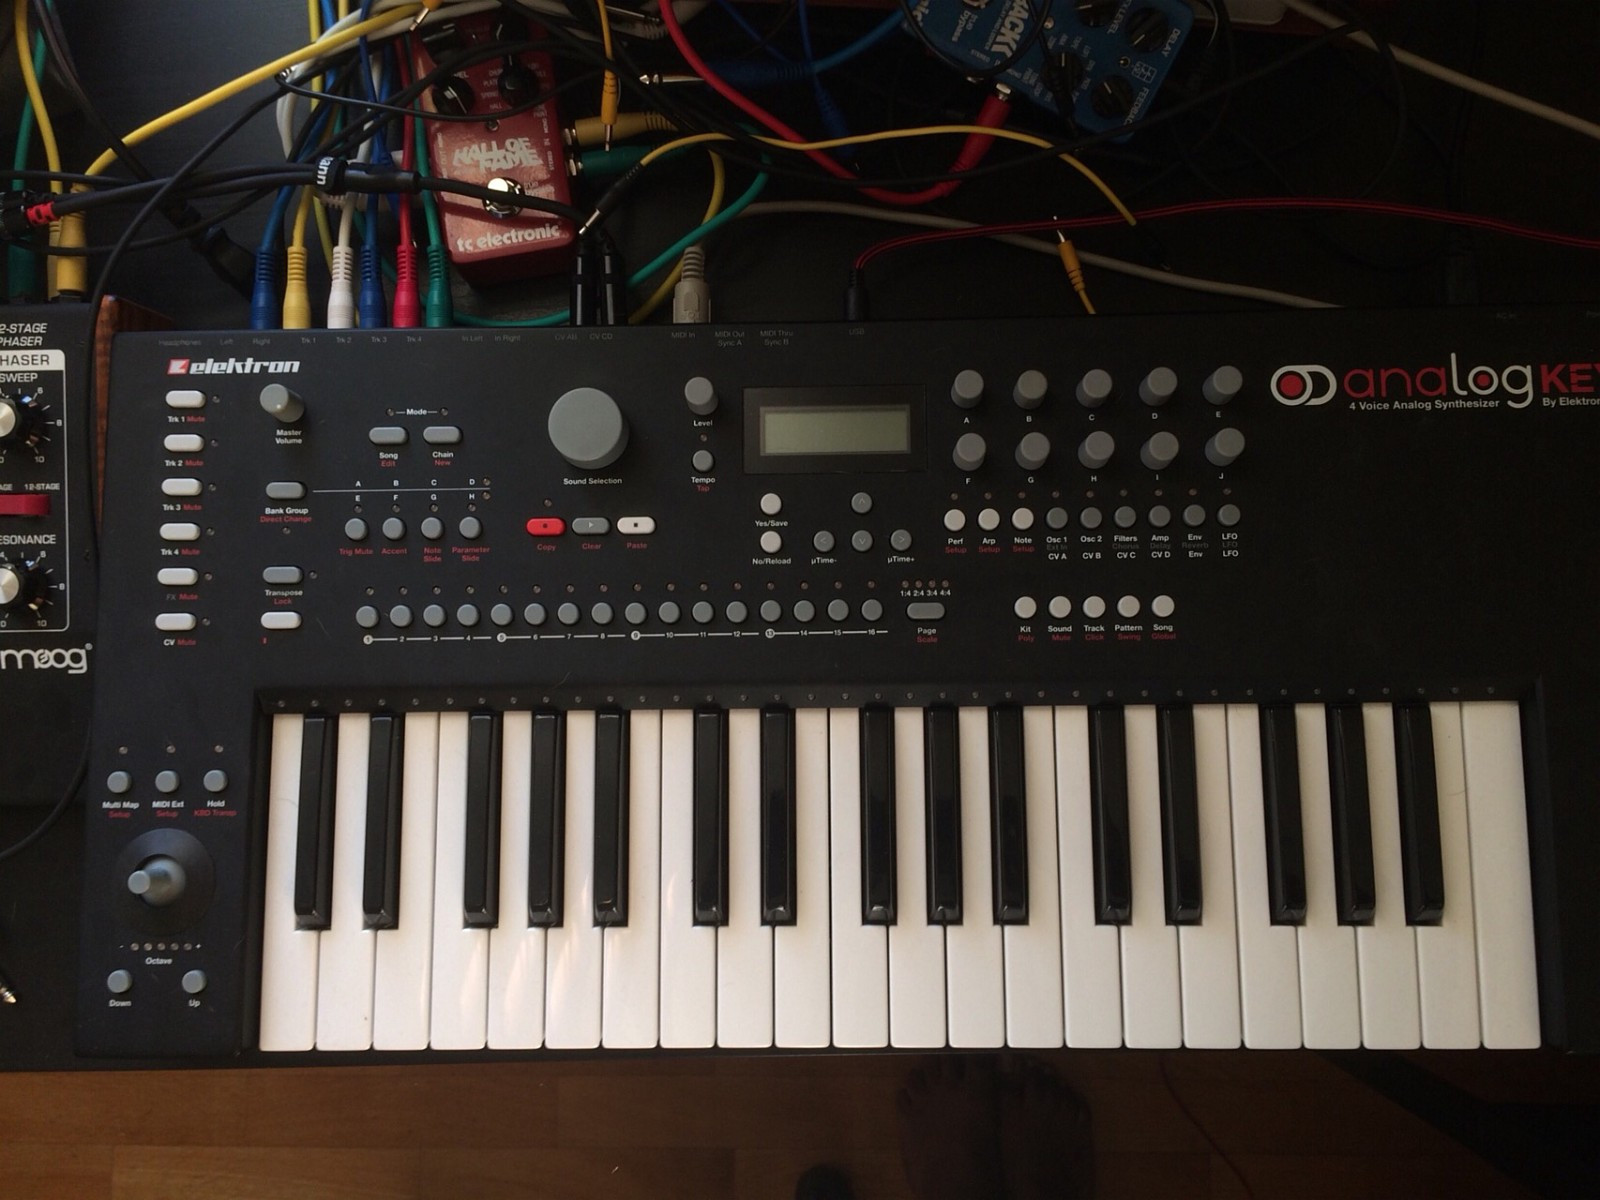 Elektron Analog Keys - Elverum  - Used Elektron Analog Keys for sale. I bought it used about a month ago. It sounds great but unfortunately all the menu diving is a major headache for me. So I have to let it go.  The synth itself is in great shape and sounds great. Comes in ori - Elverum